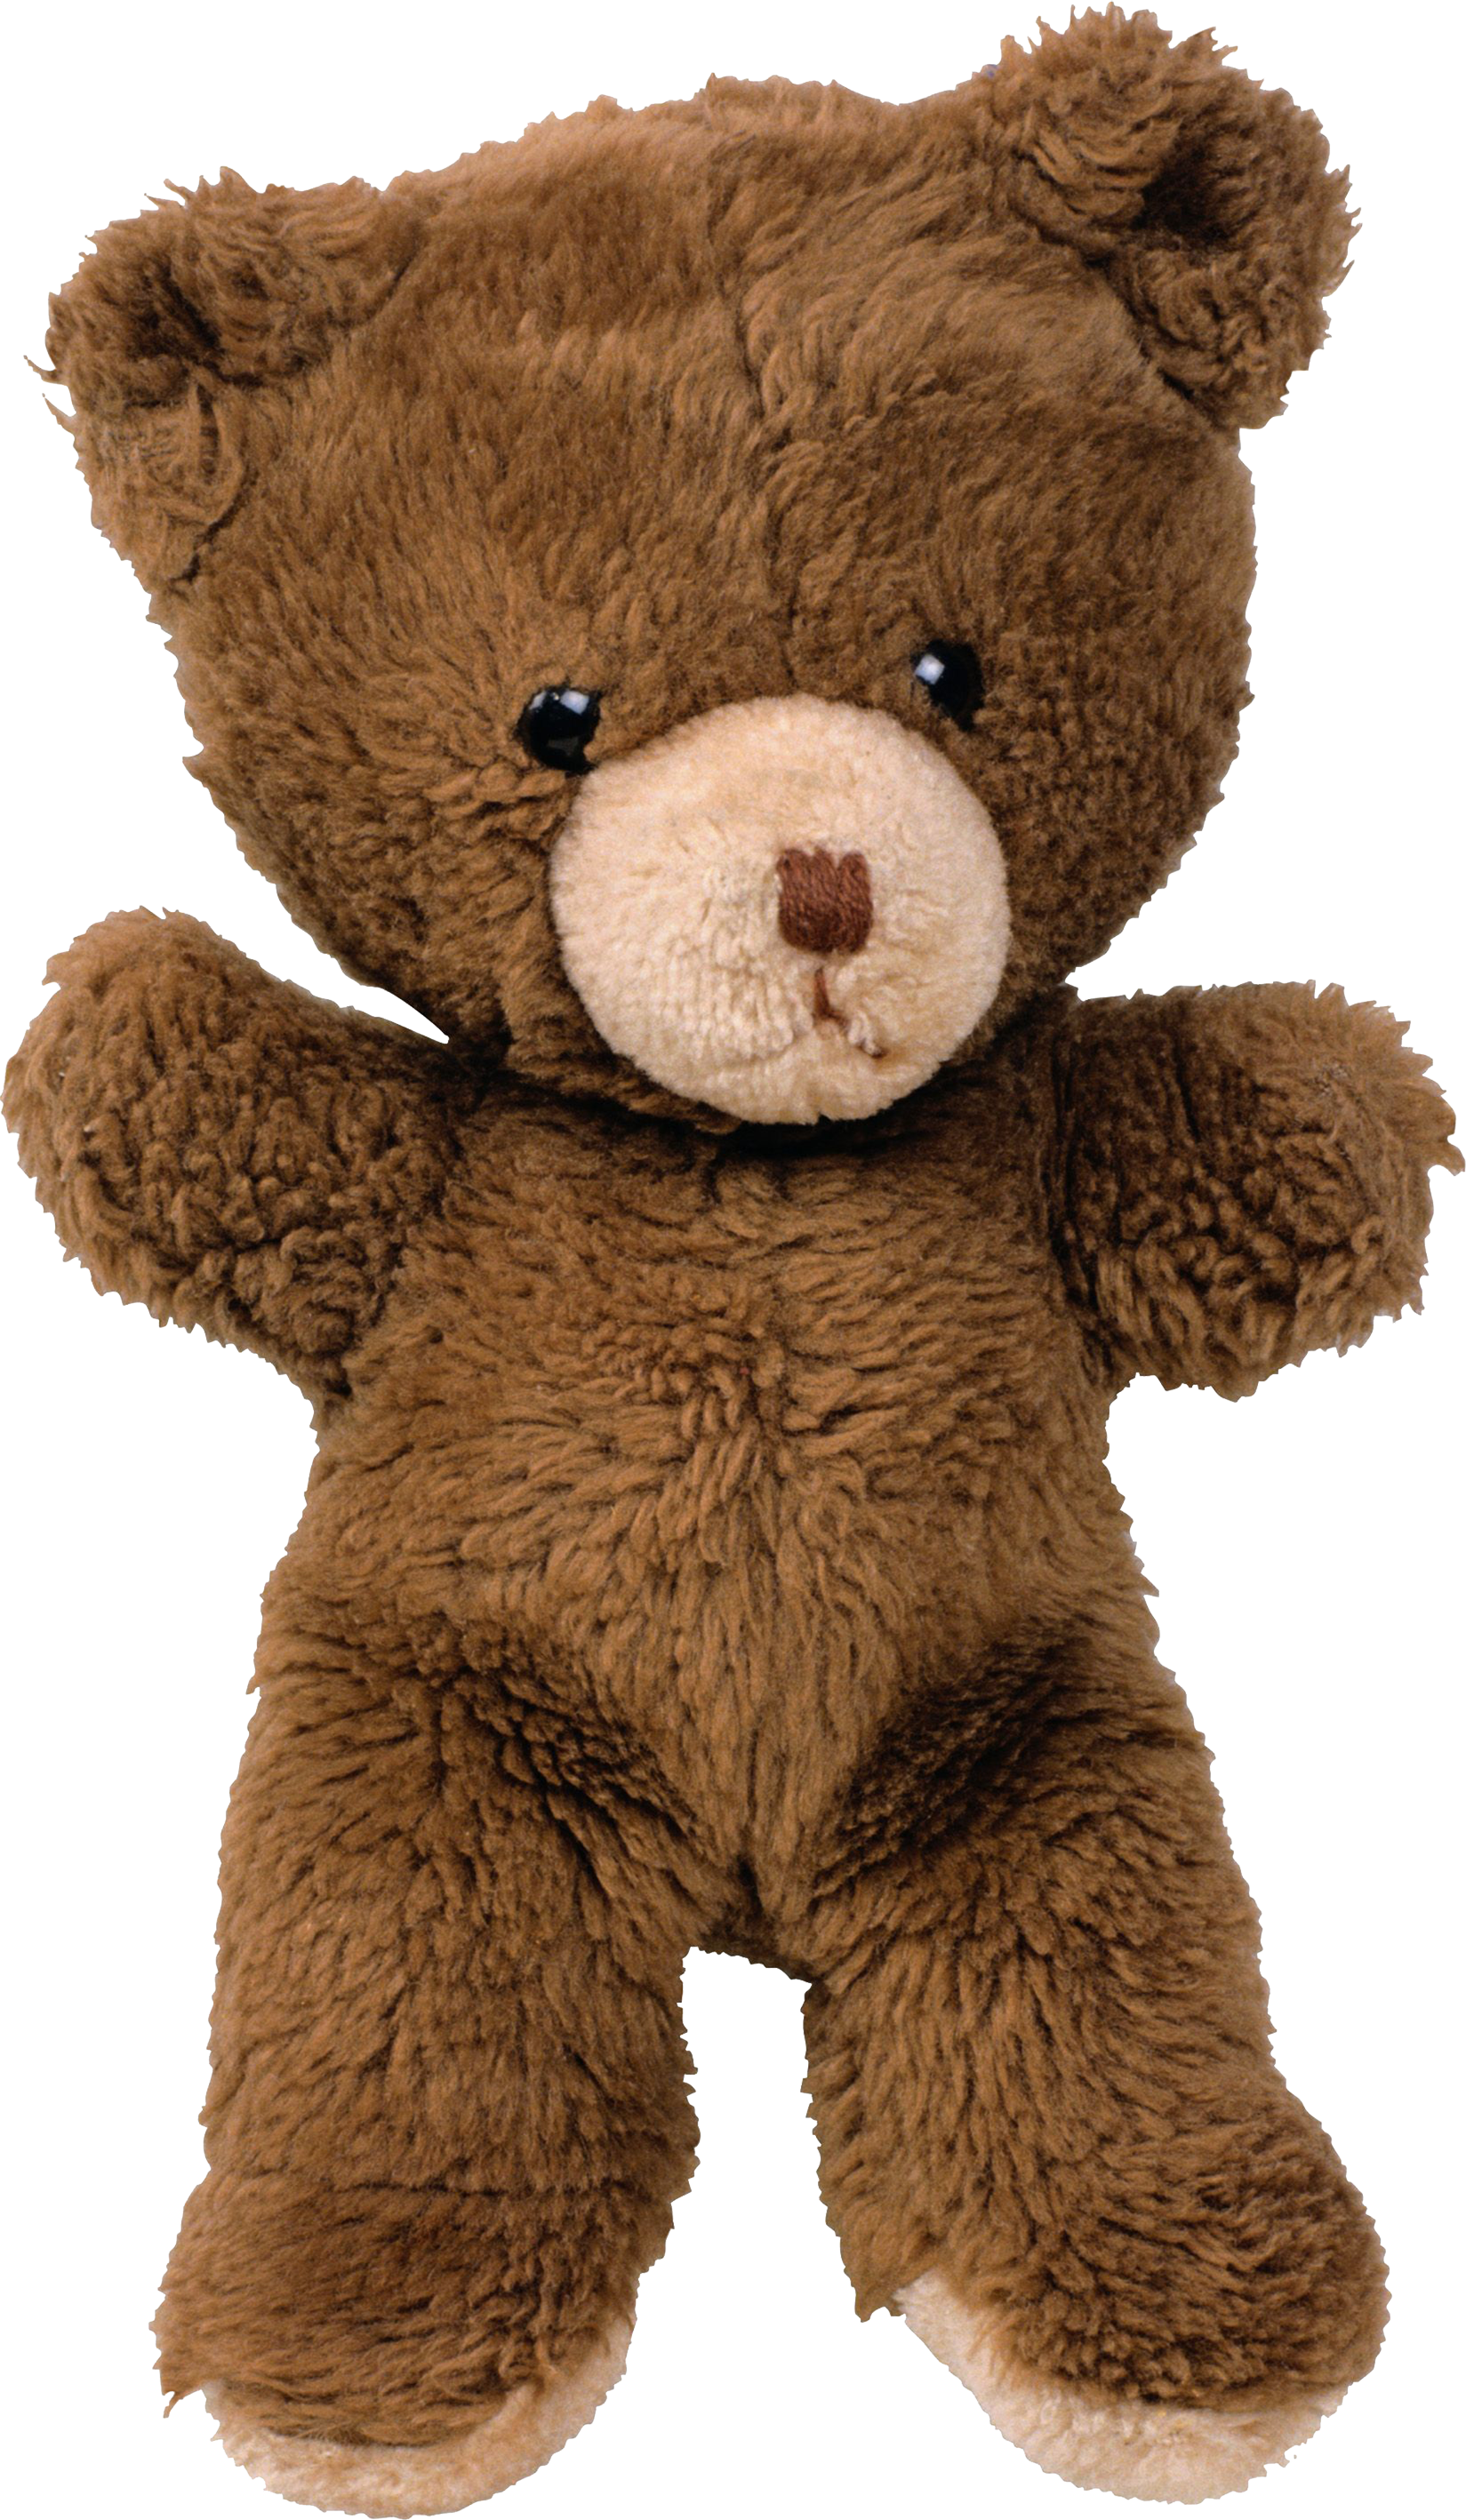 toy bear PNG image - Toy Bear PNG